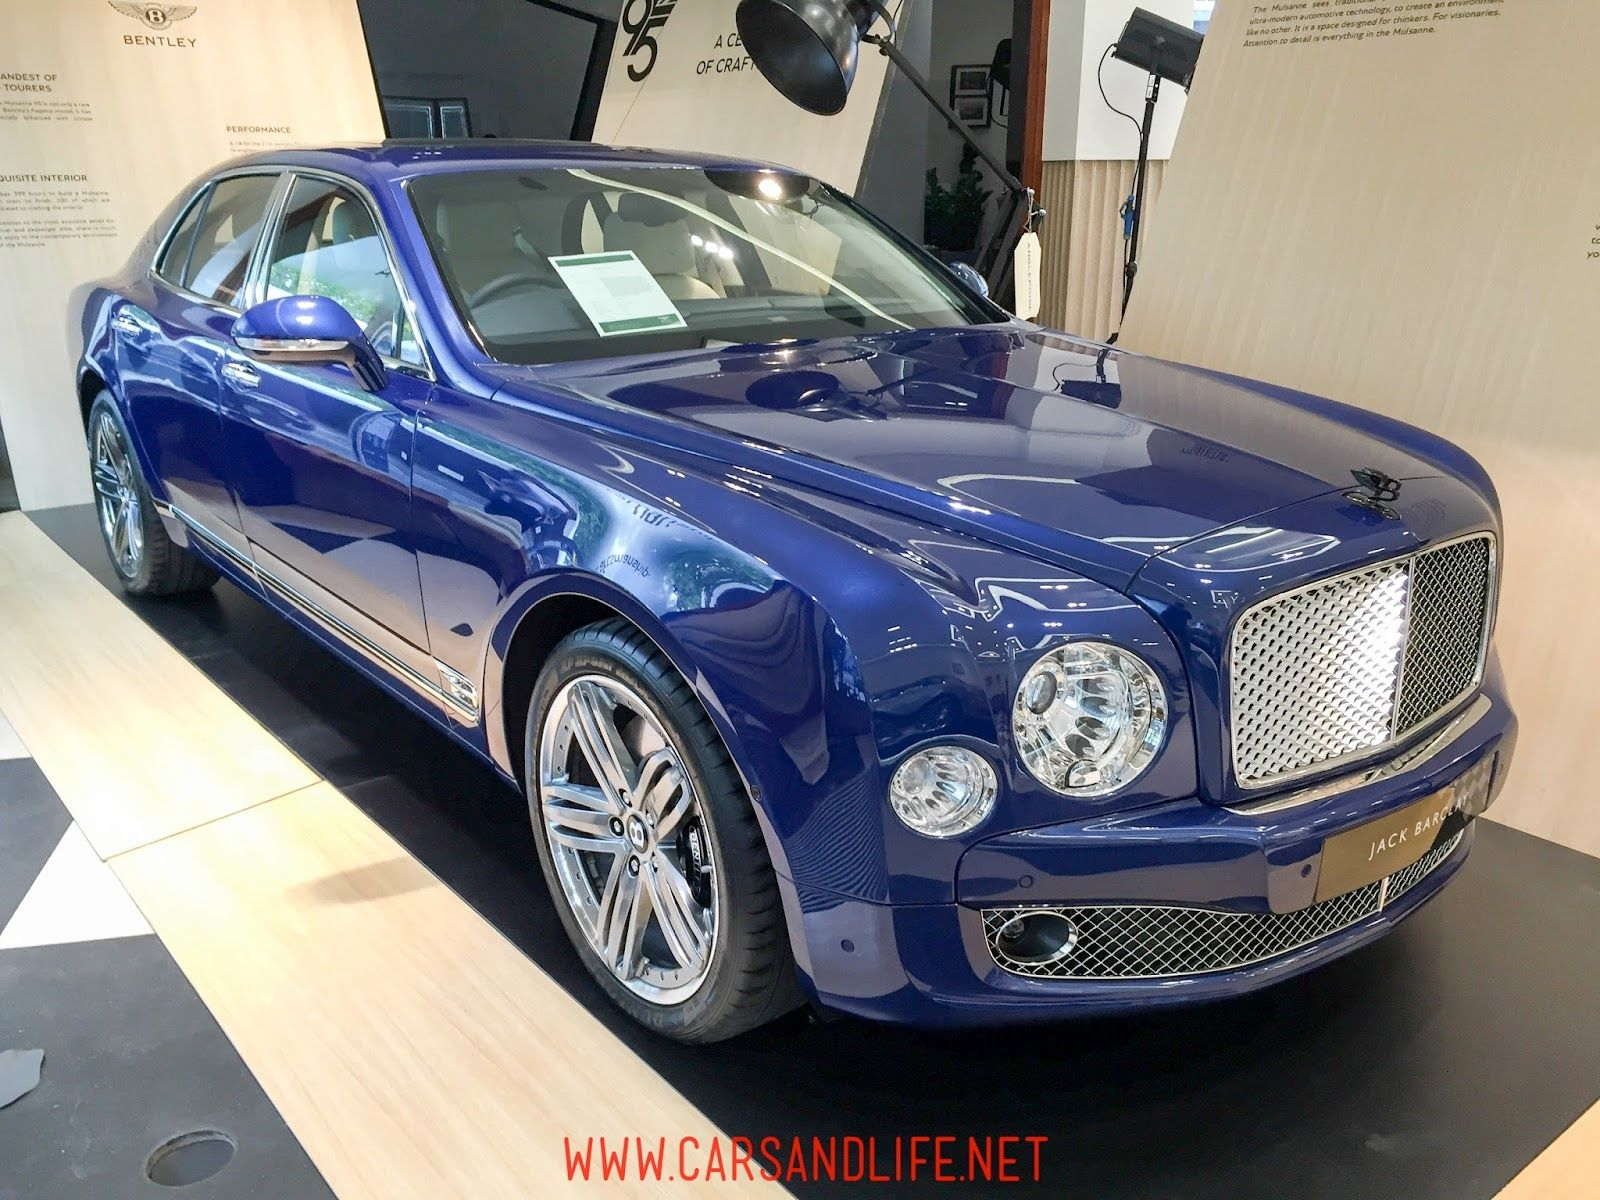 Cars & Life | Cars Fashion Lifestyle Blog: Limited Edition Bentley Mulsanne 95 | Jack Barclay HR Owen, London